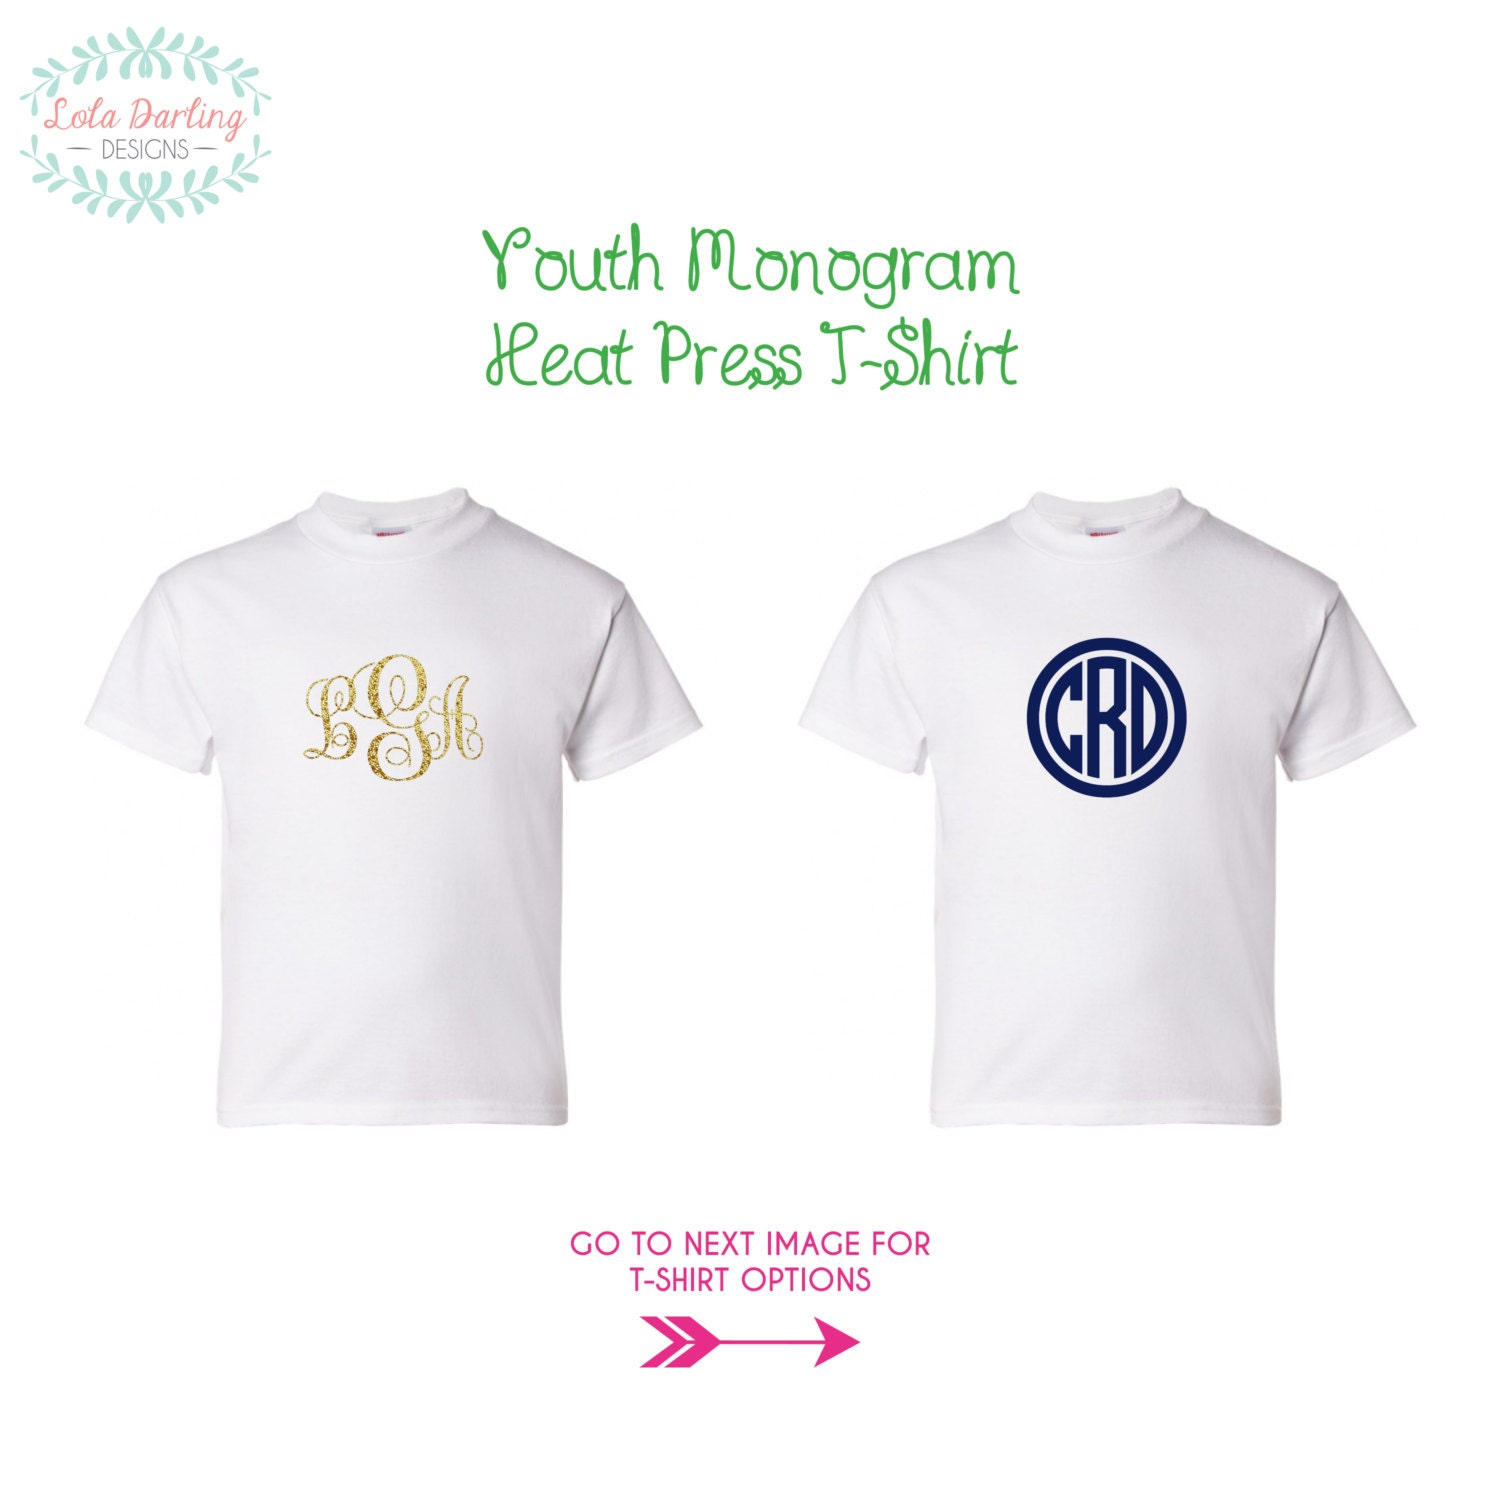 Monogram heat press youth t shirt by loladarlingdesigns on for Heat pressed t shirts